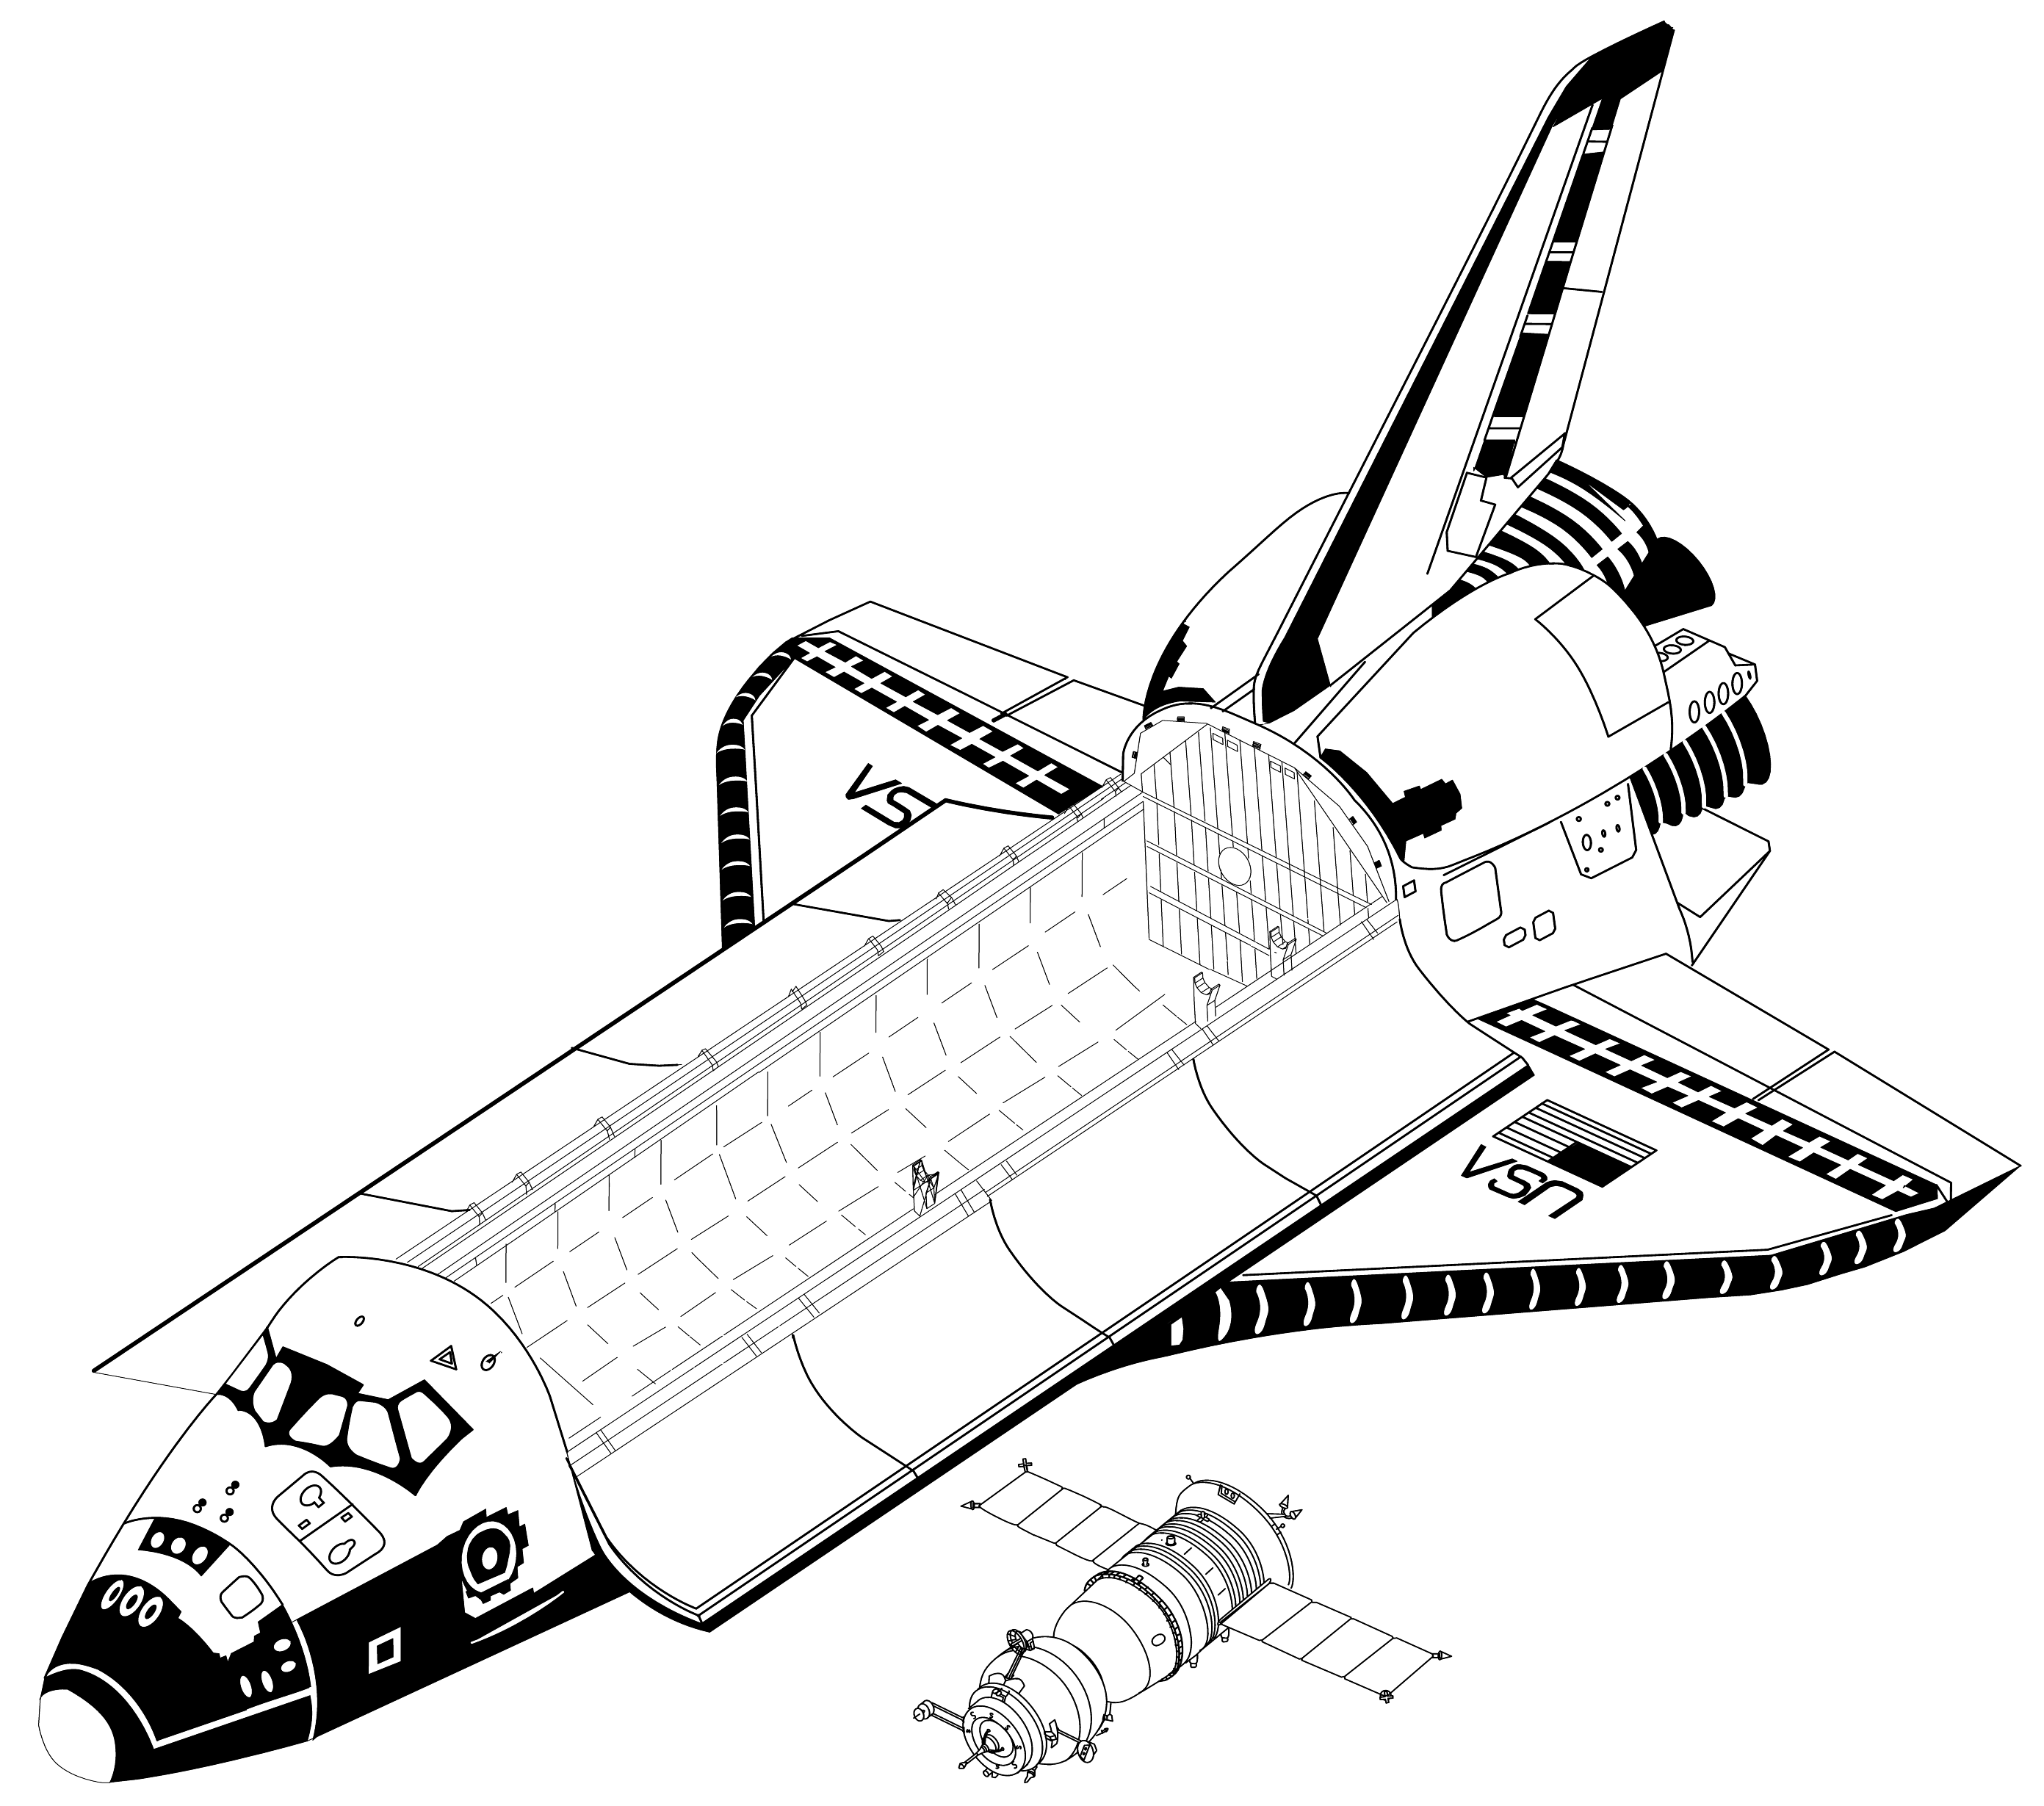 The Soviet Shuttle Buran 1k1 On Its Rail Car Yes Those